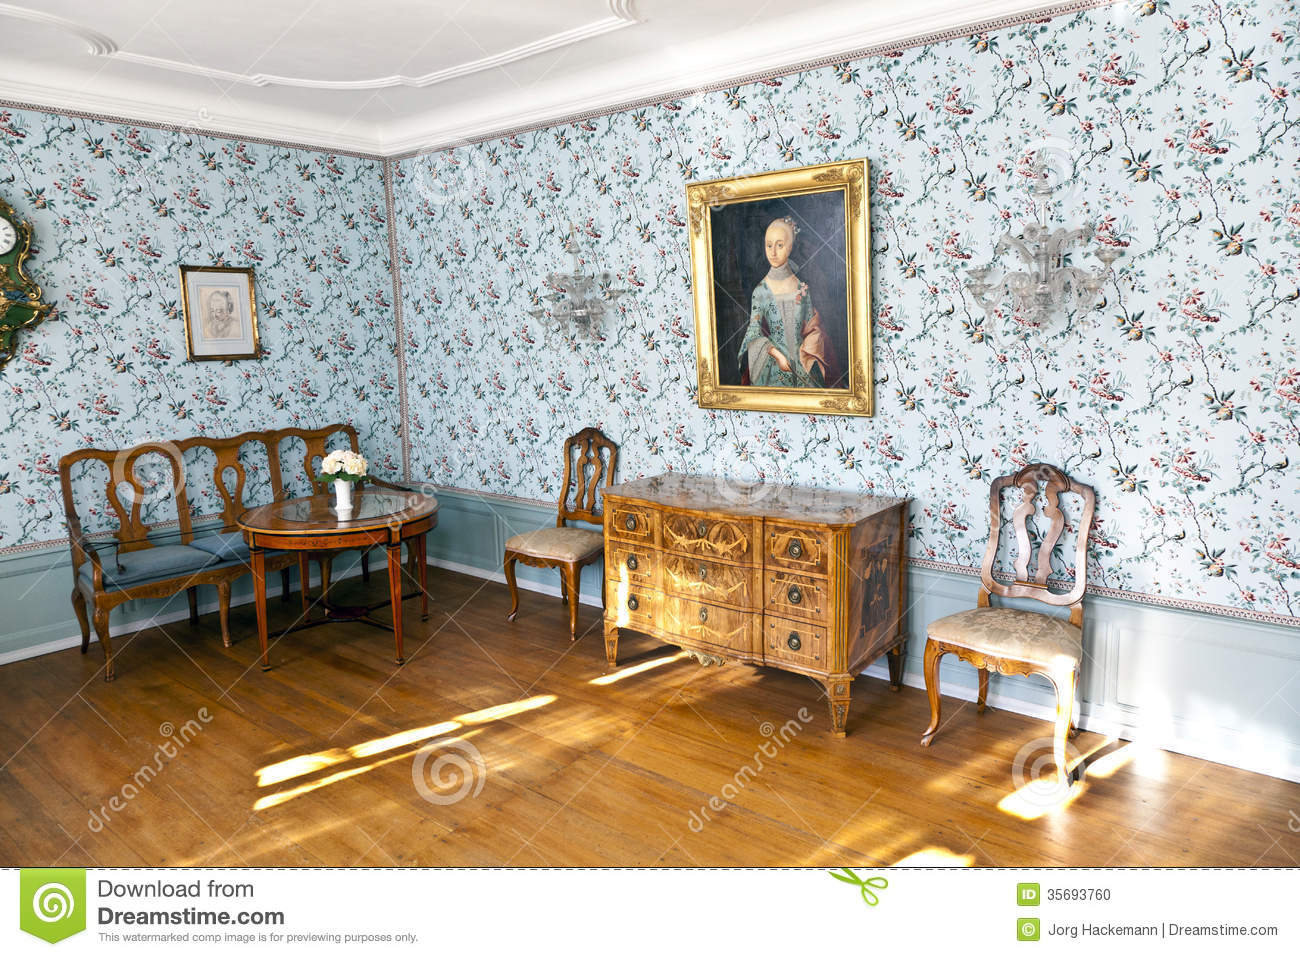 cornelia goethes raum im goethe haus in frankfurt am main redaktionelles bild bild 35693760. Black Bedroom Furniture Sets. Home Design Ideas